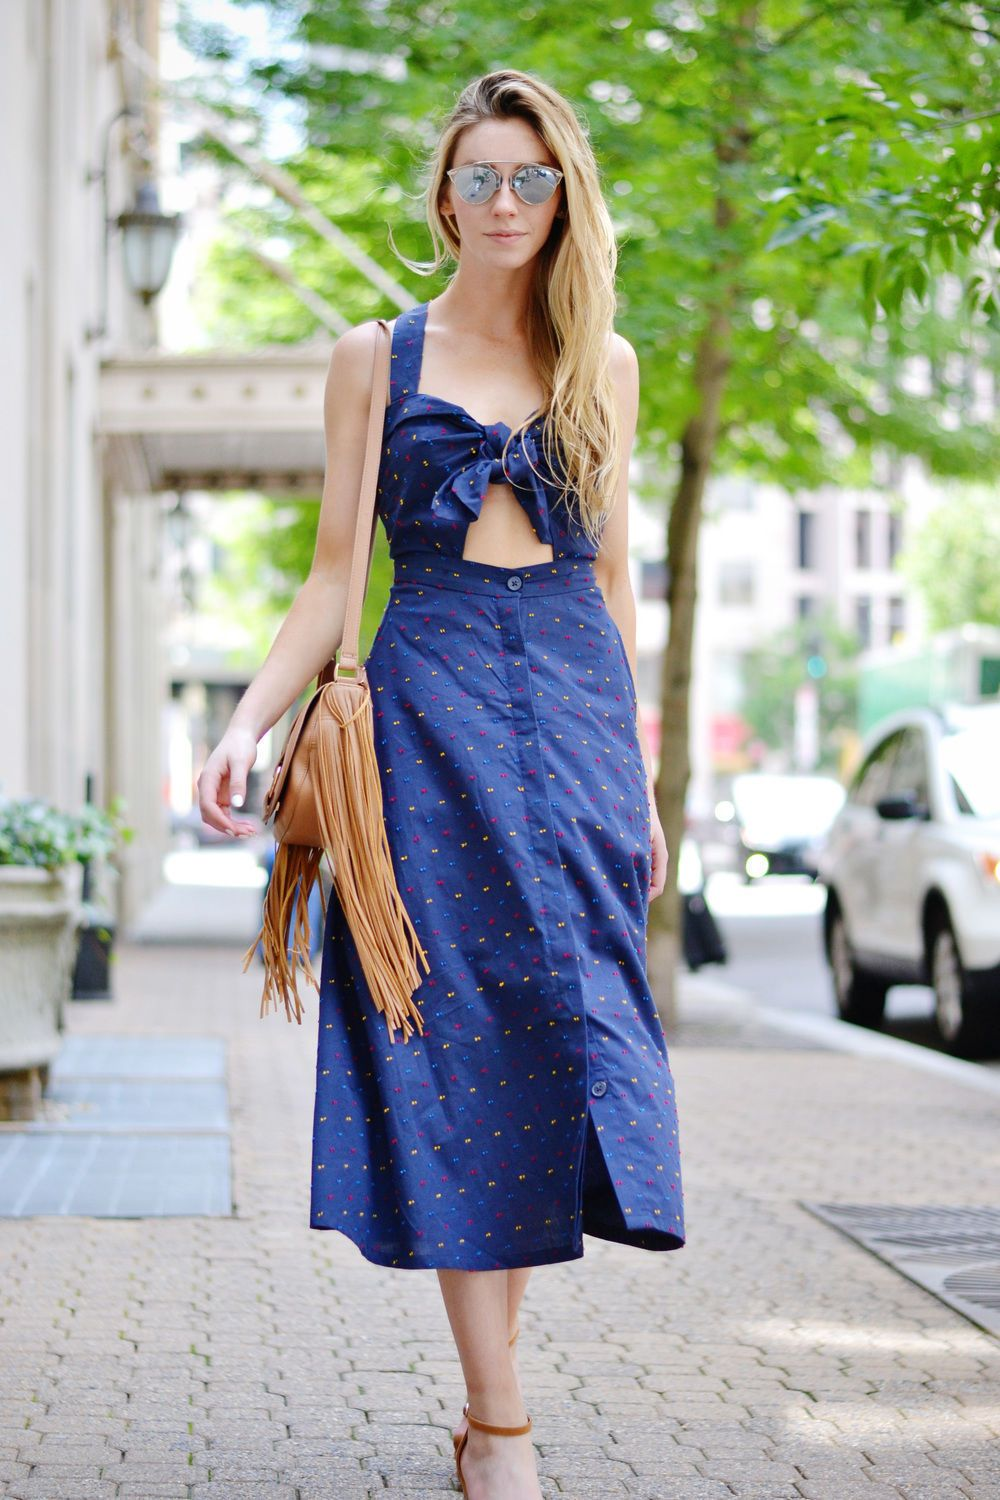 Blue dress - the trend of the upcoming season